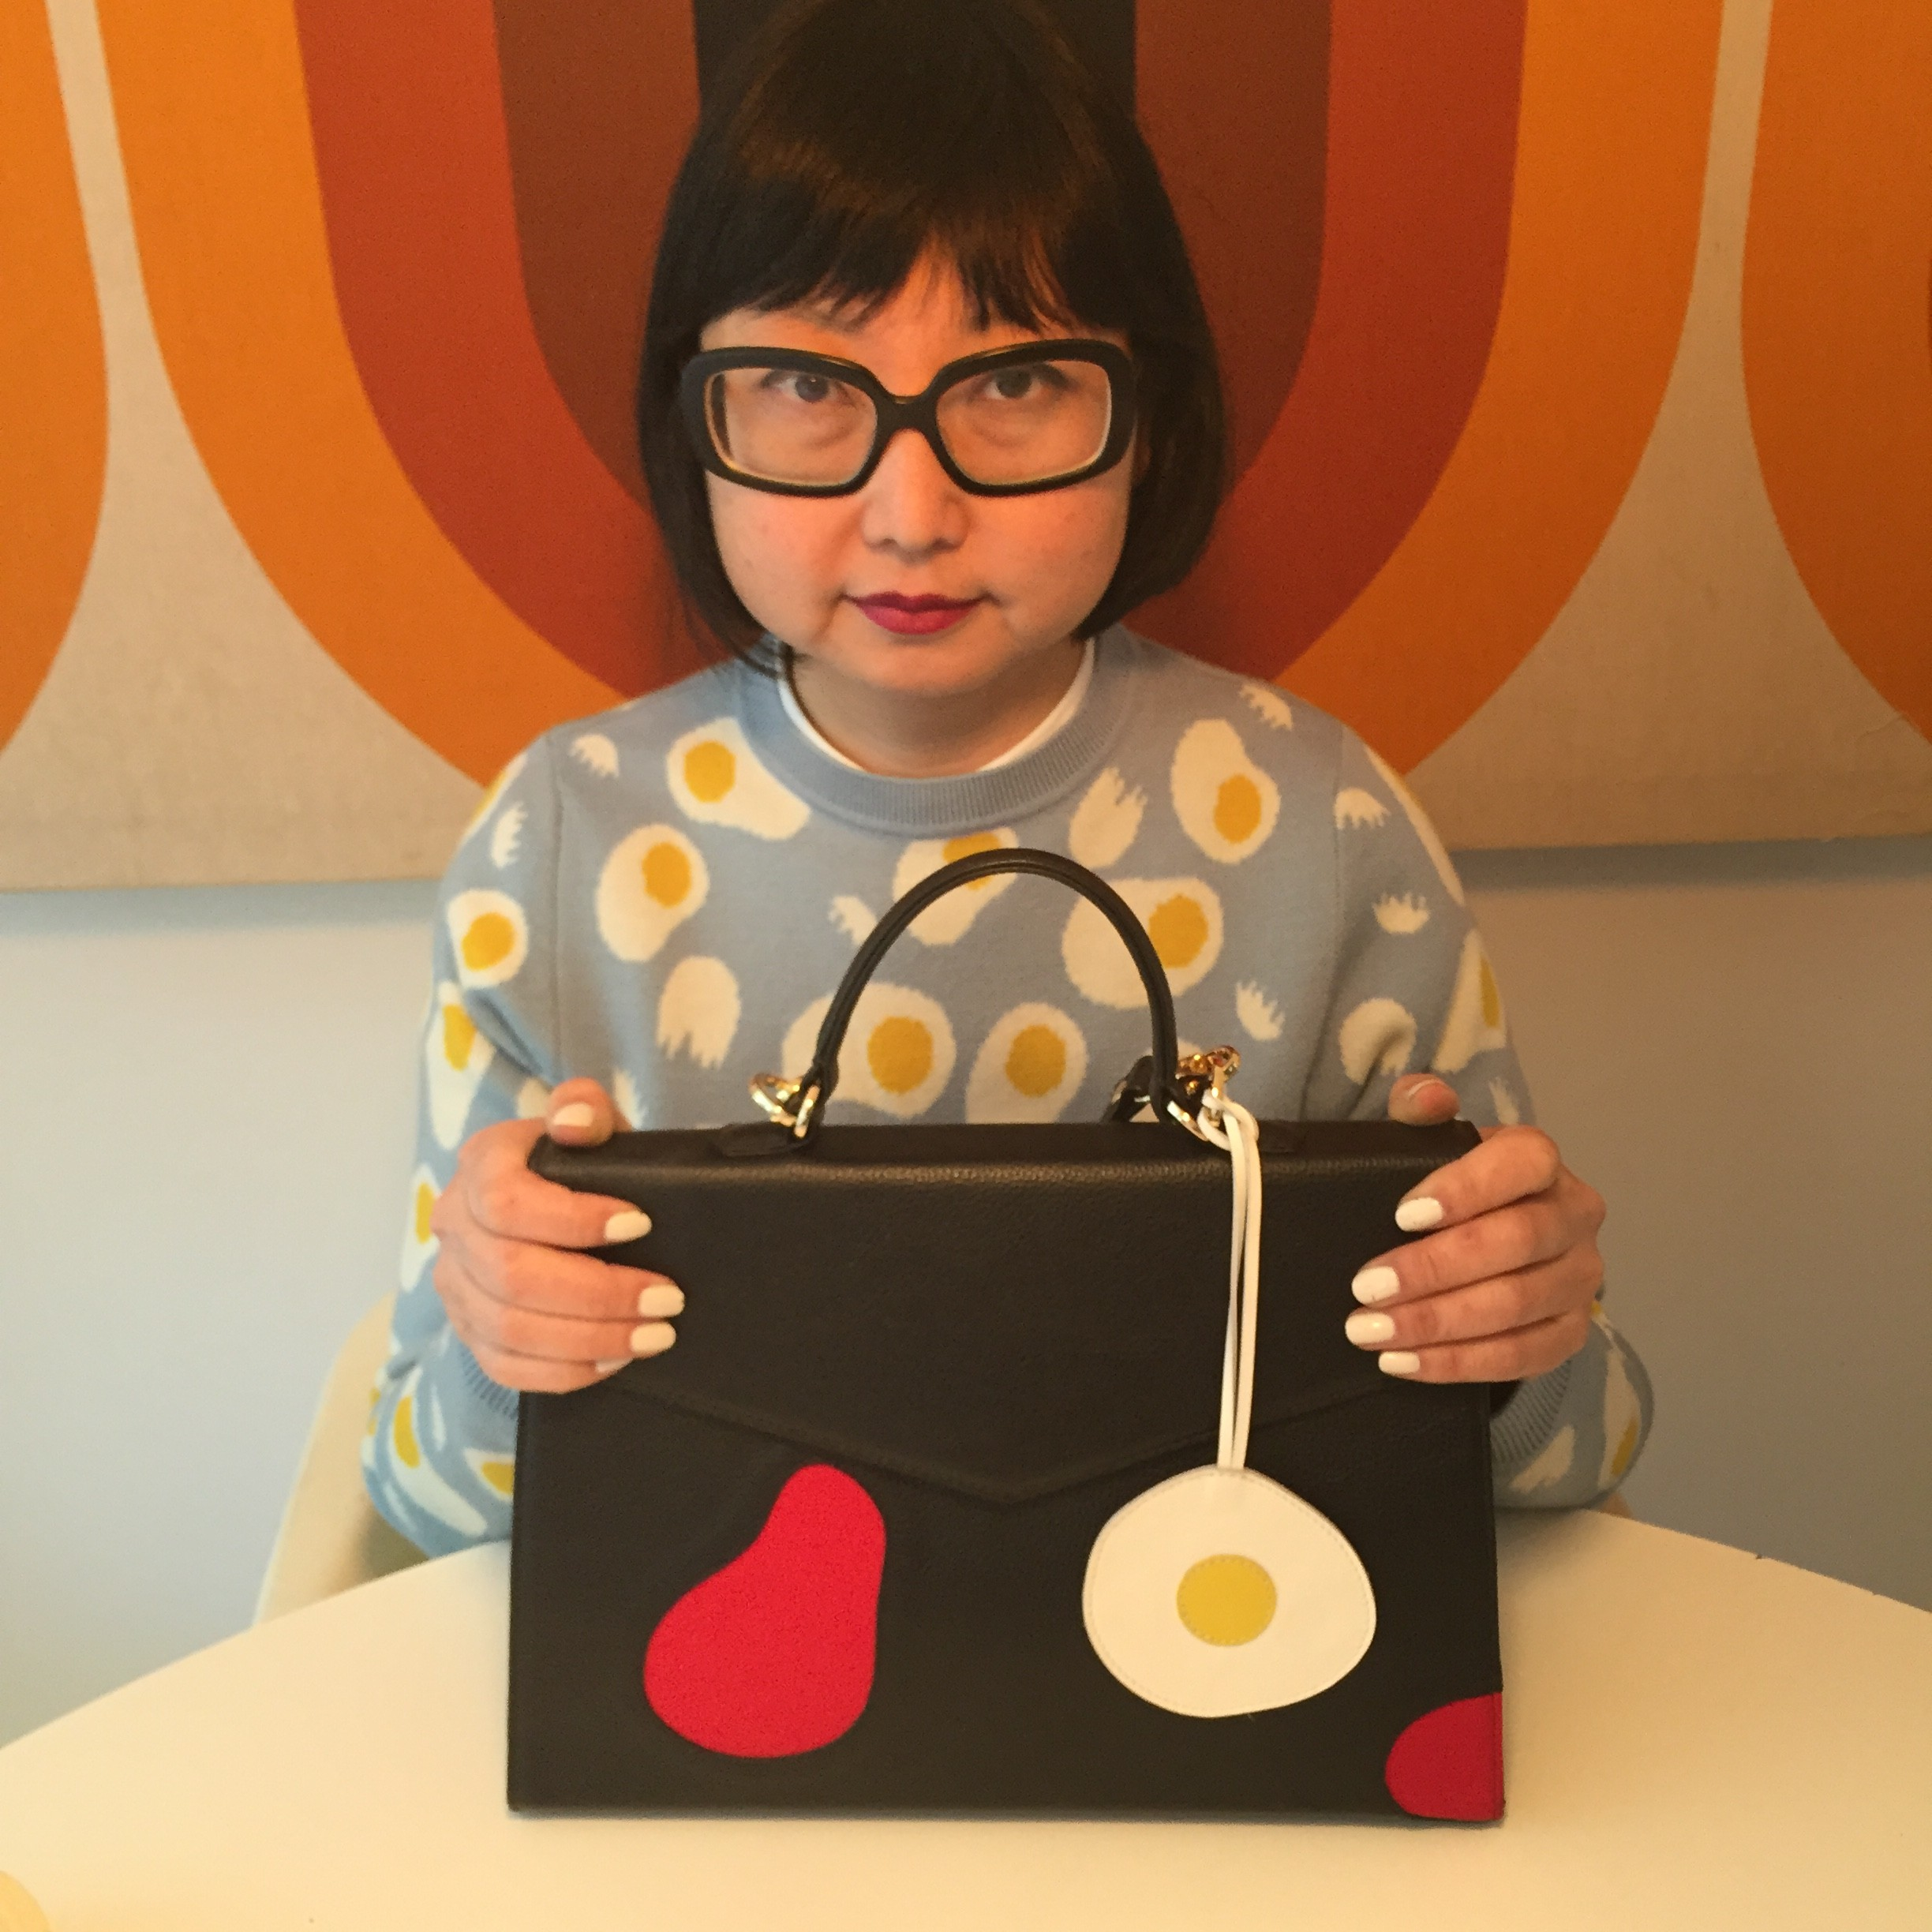 I love the charms that you can get to put on your bag.  I like to match my outfit with the charm, like this egg charm which matches my Lazzari sweater designed by Olimpia Zagnoli whose graphic design work I really admire.